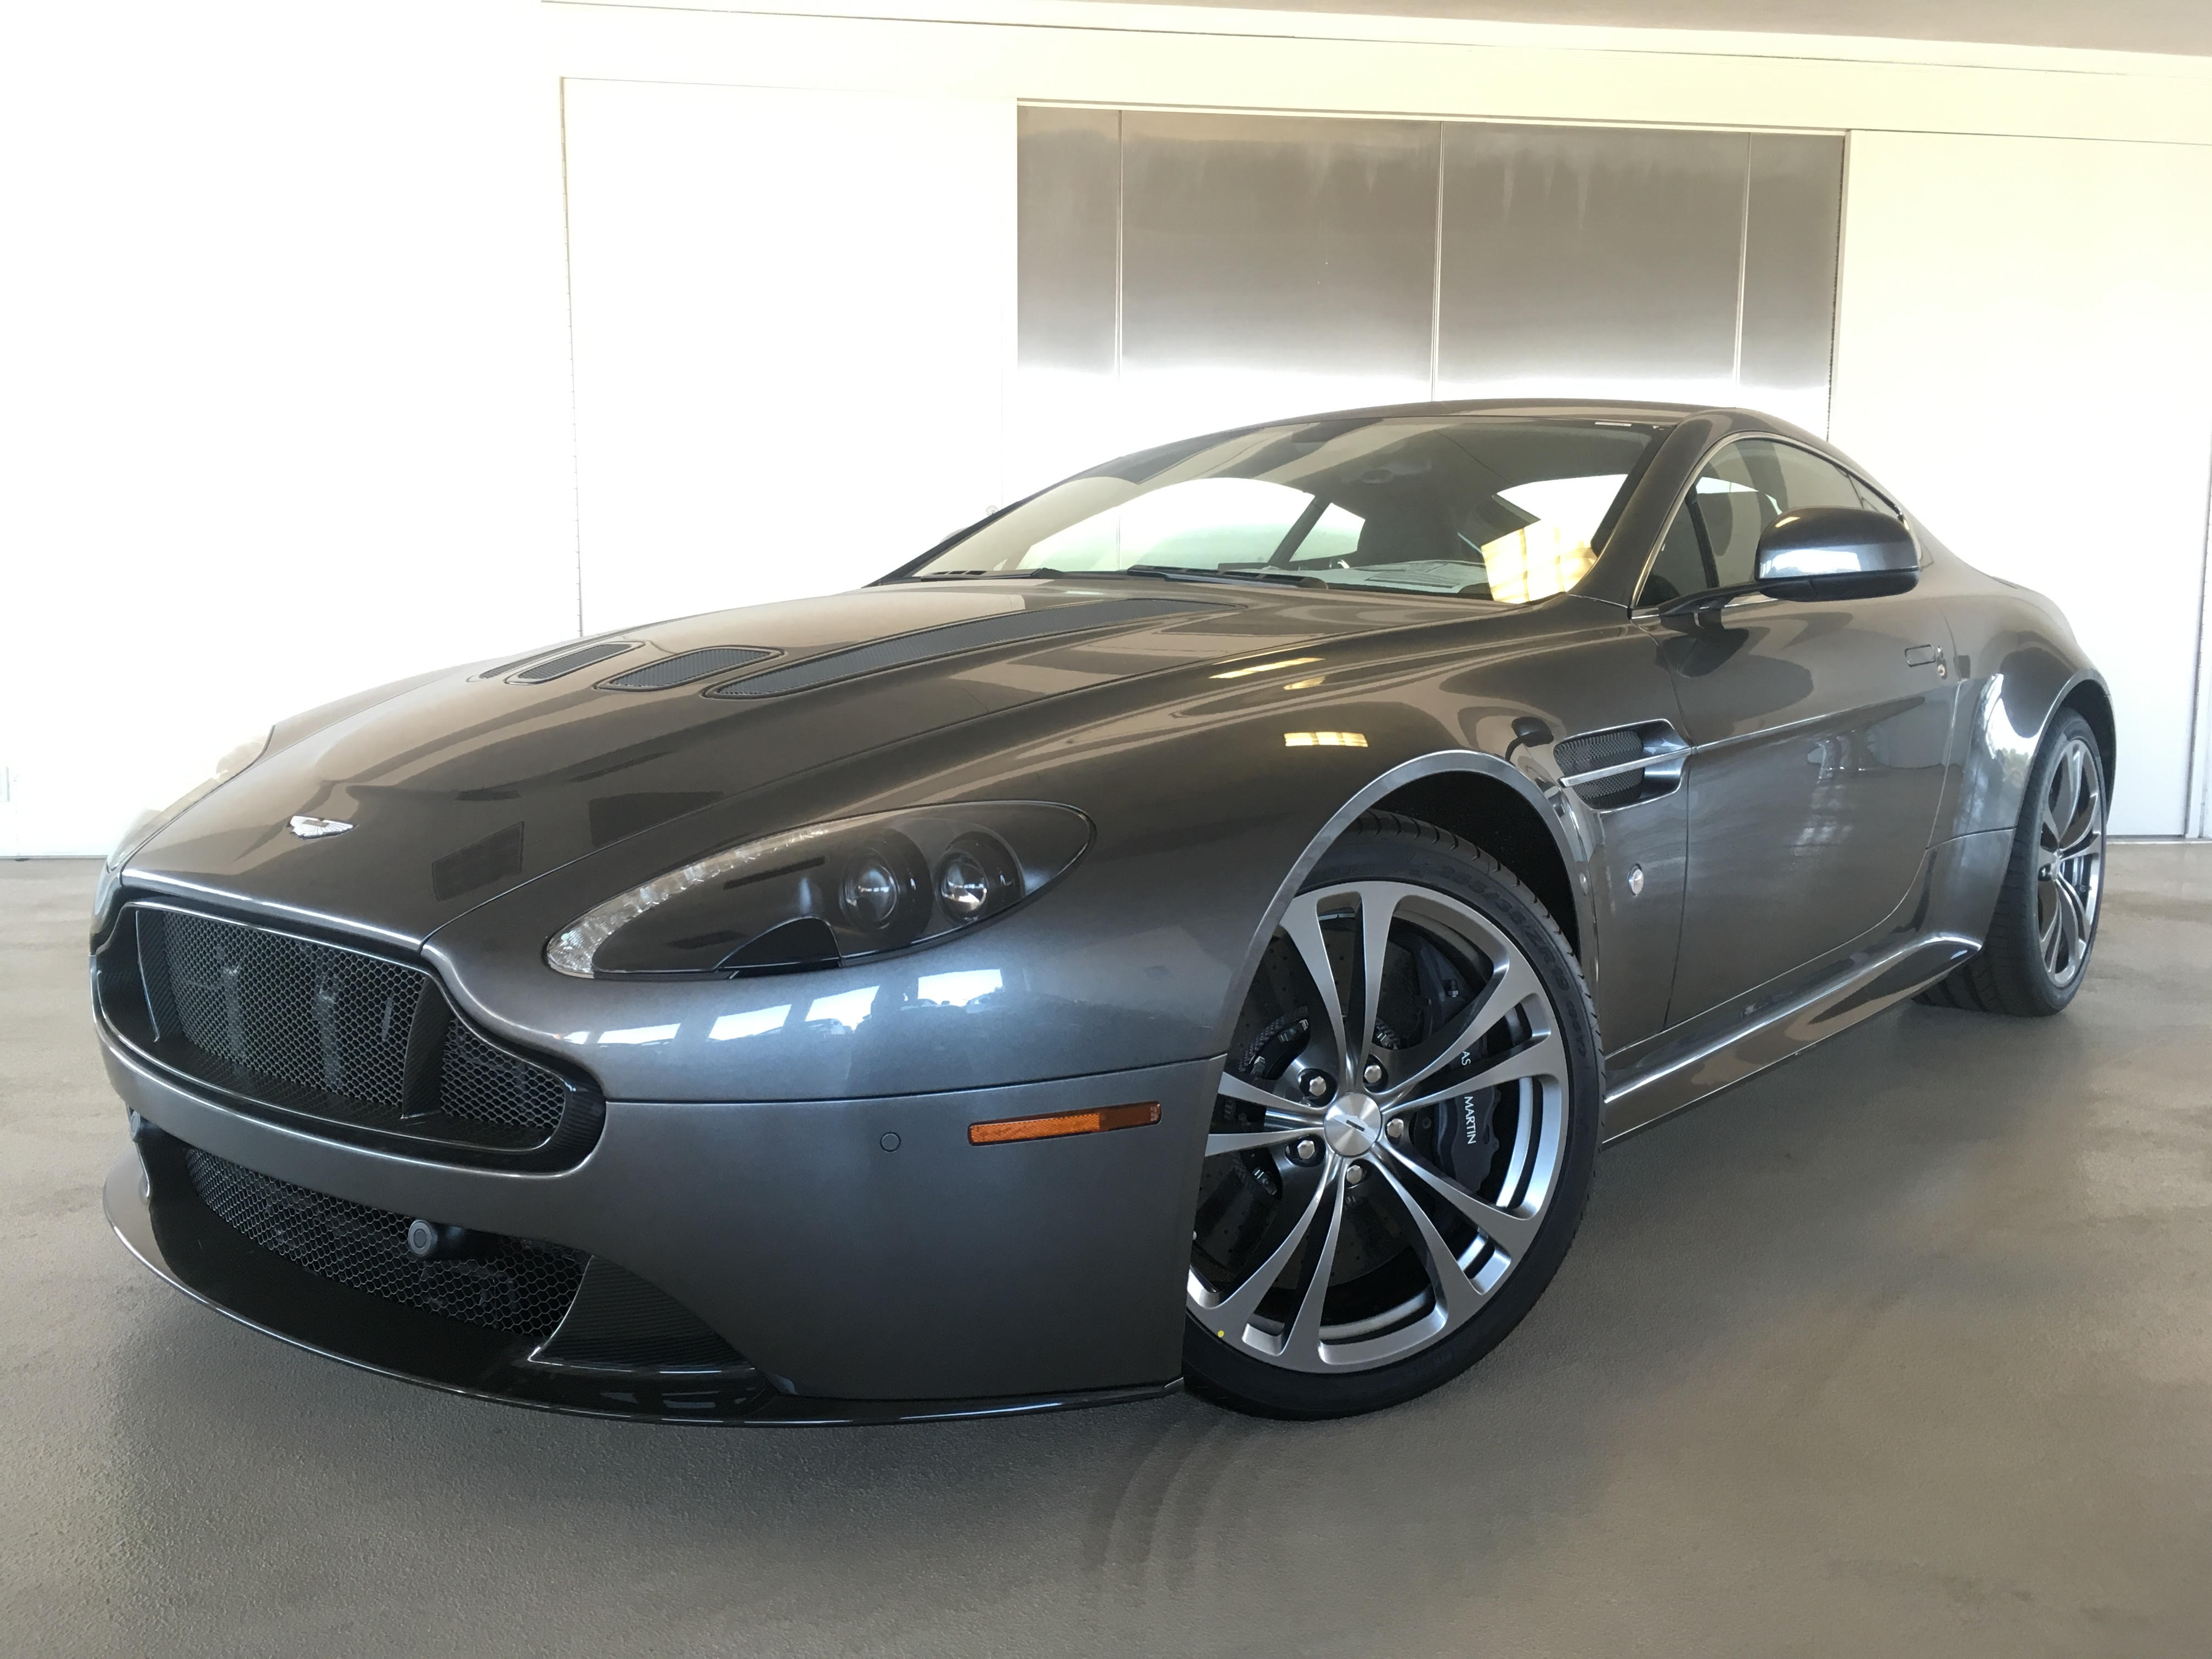 Aston Martin Offers >> Galpin Aston Martin Los Angeles Aston Martin Special Offers Van